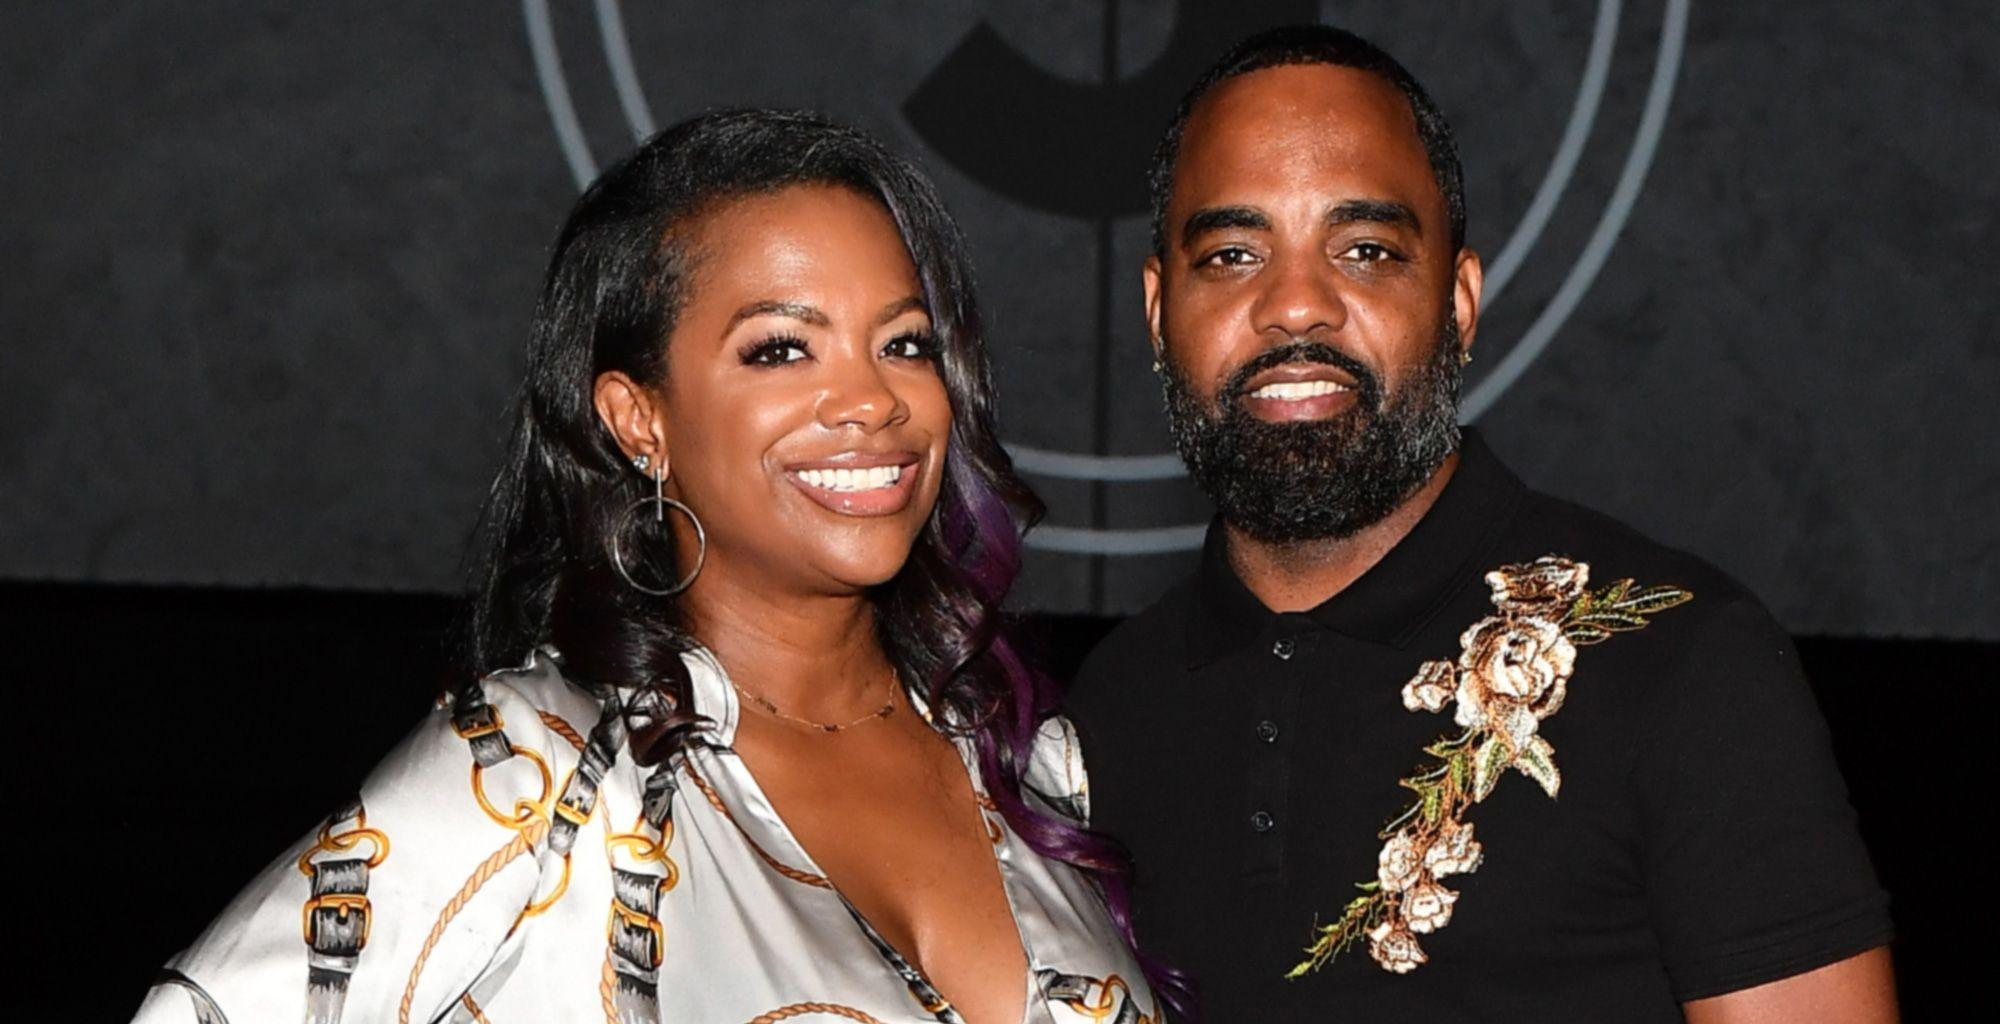 Kandi Burruss Looks Gorgeous With Red Hair - Check Out Her Latest Look